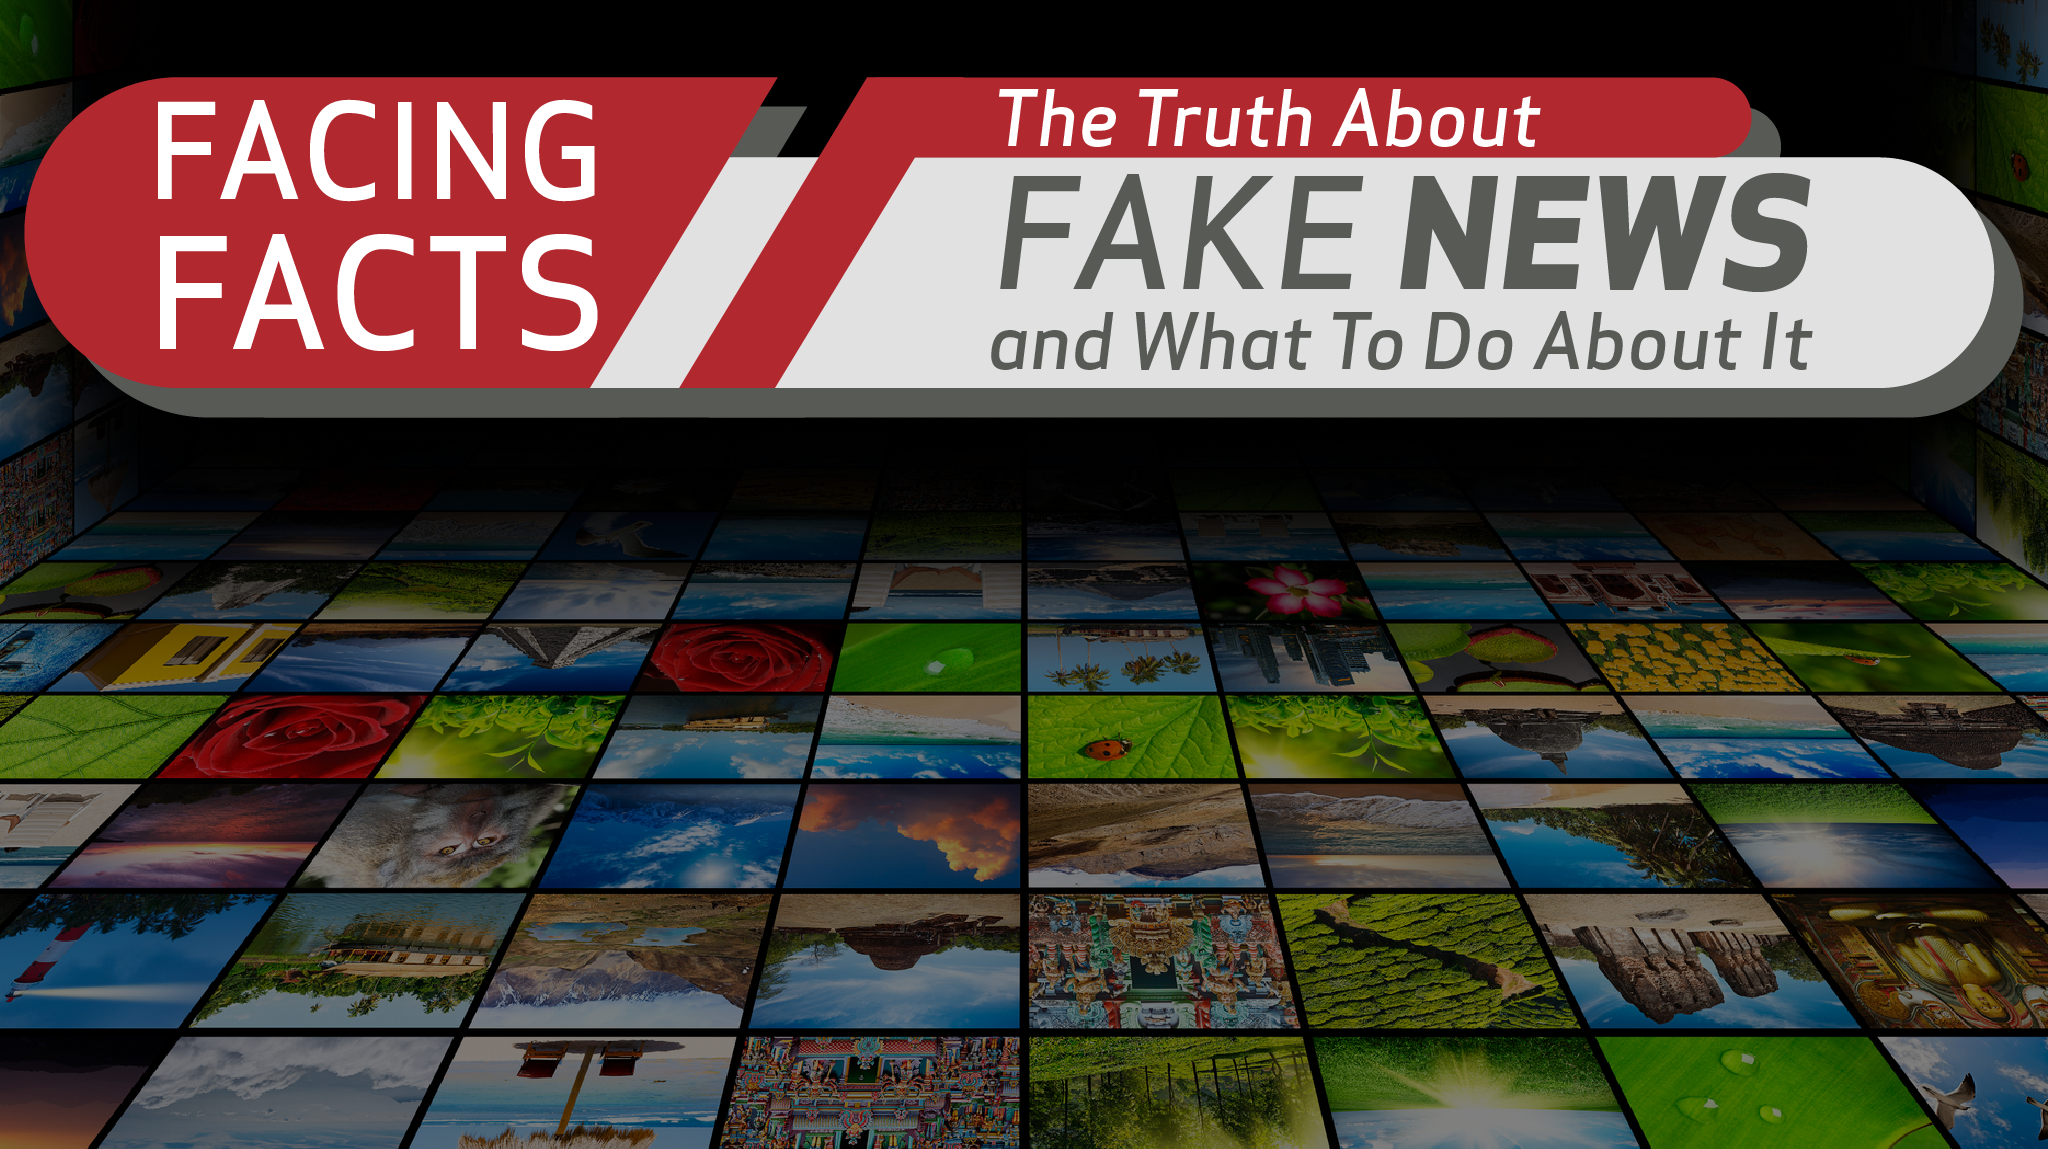 Facing Facts: The Truth About Fake News and What To Do About It